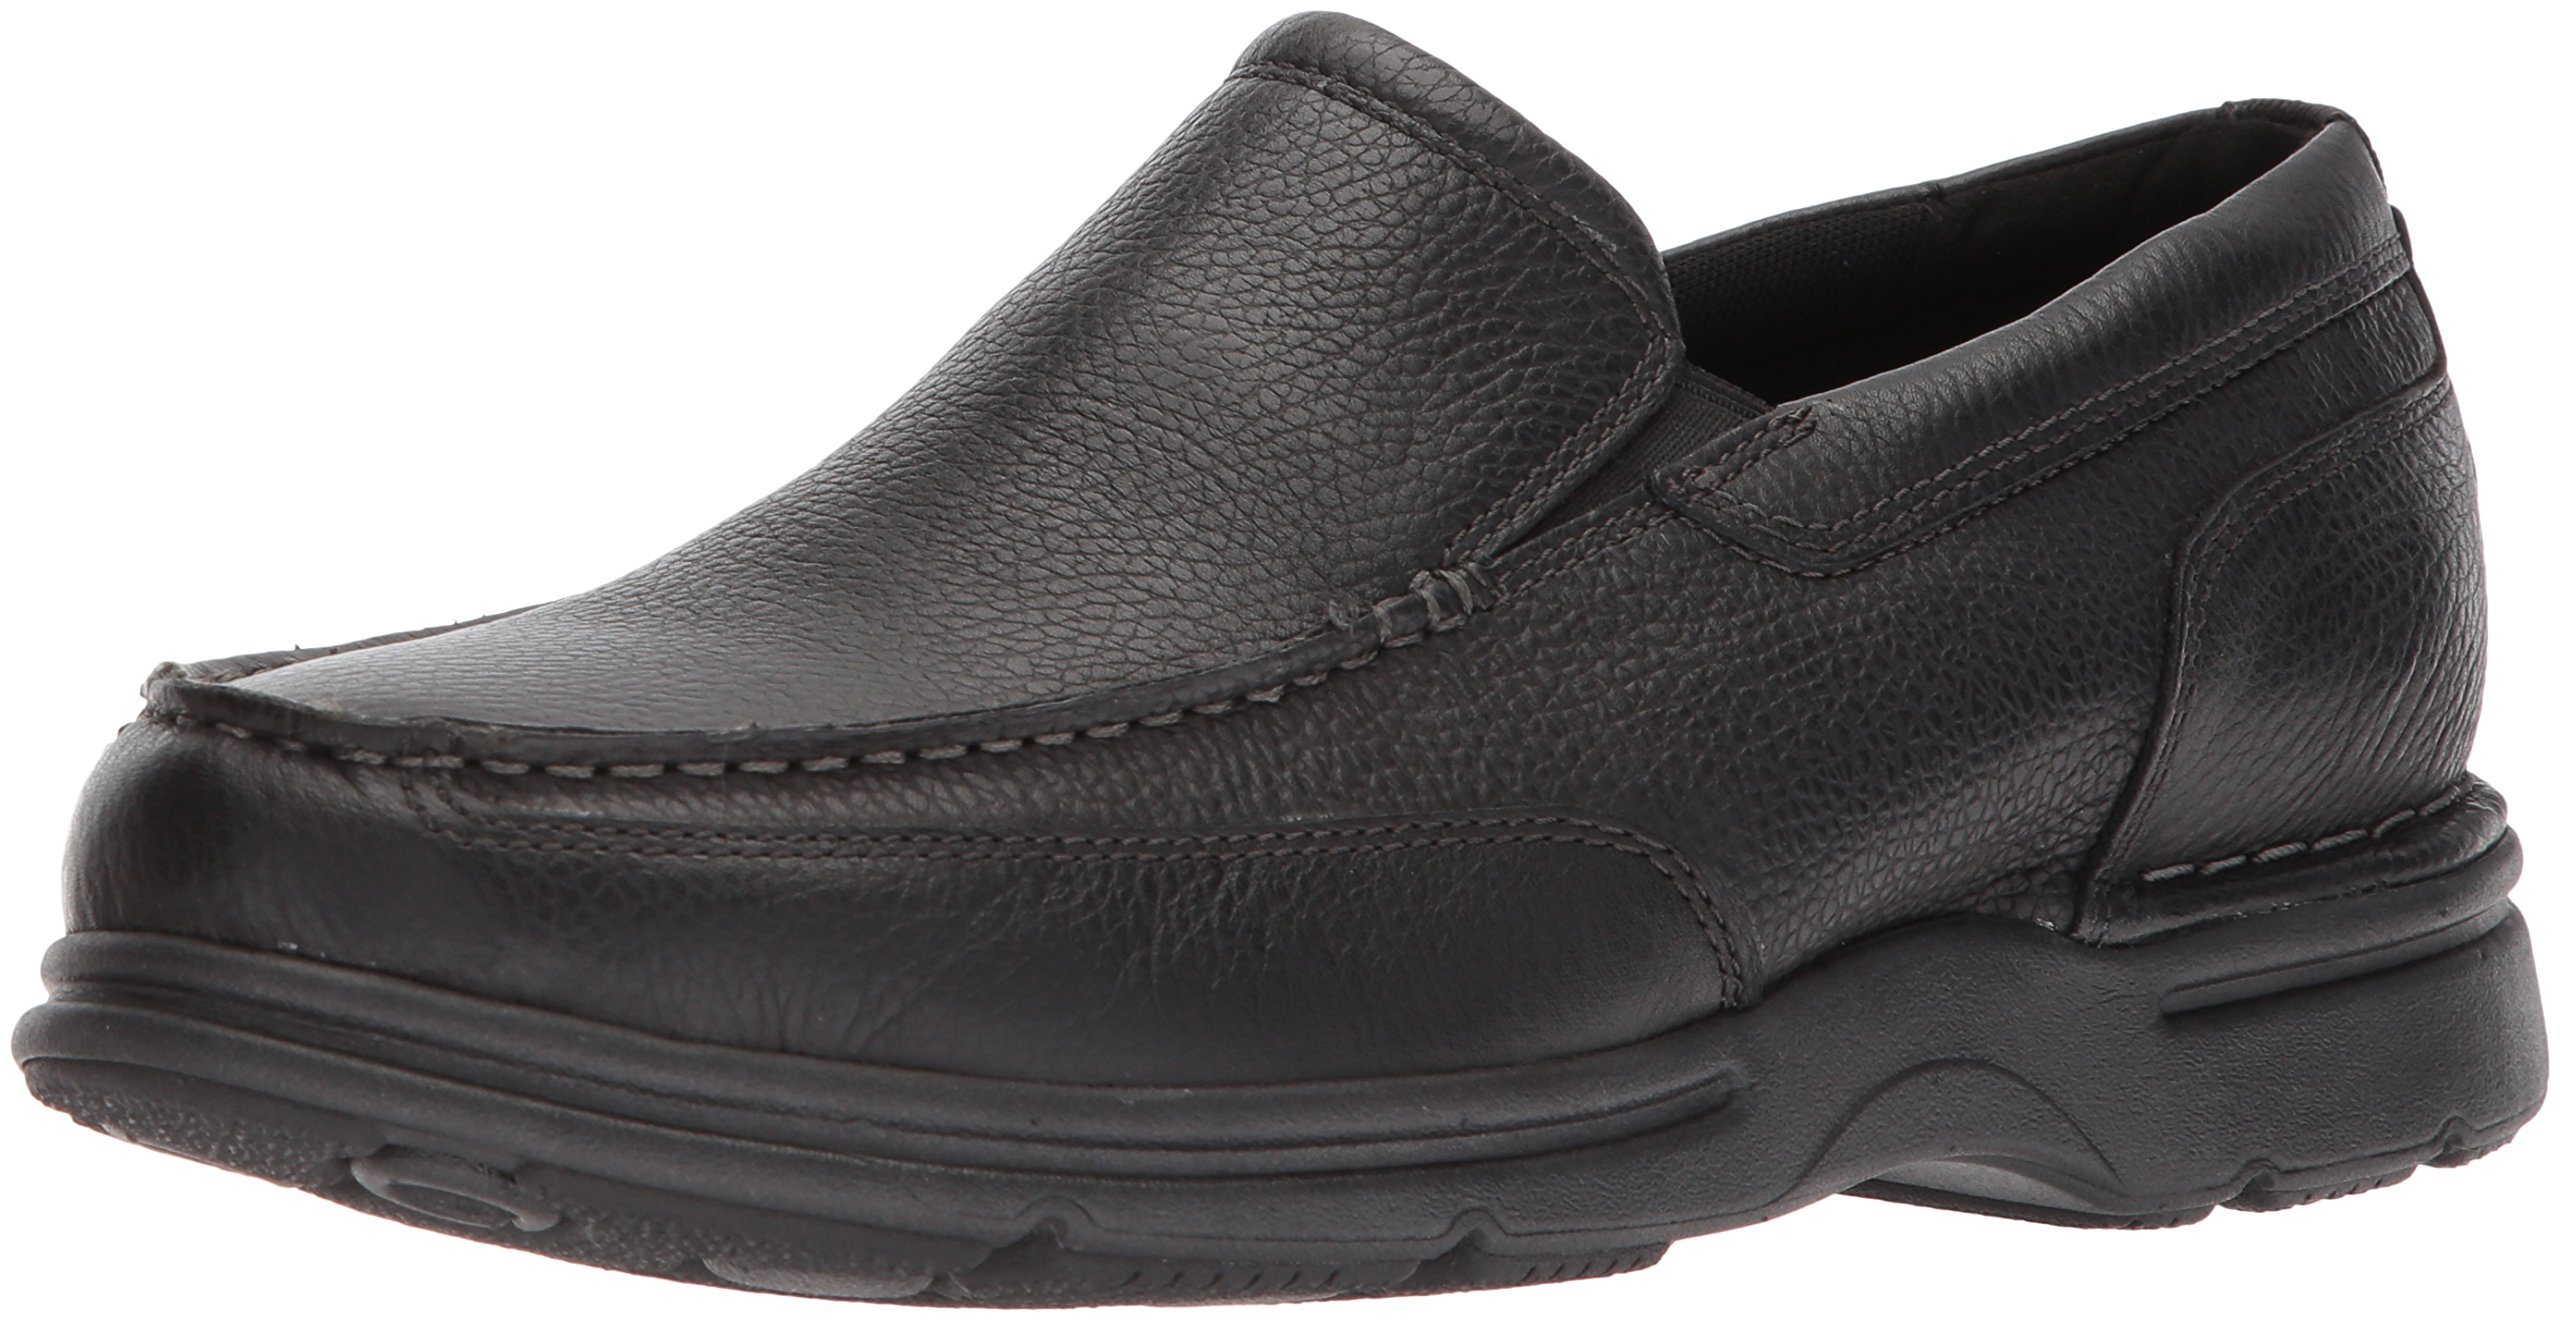 Rockport Men's Eureka Plus Slip On Oxford, Black, 9 W US by Rockport